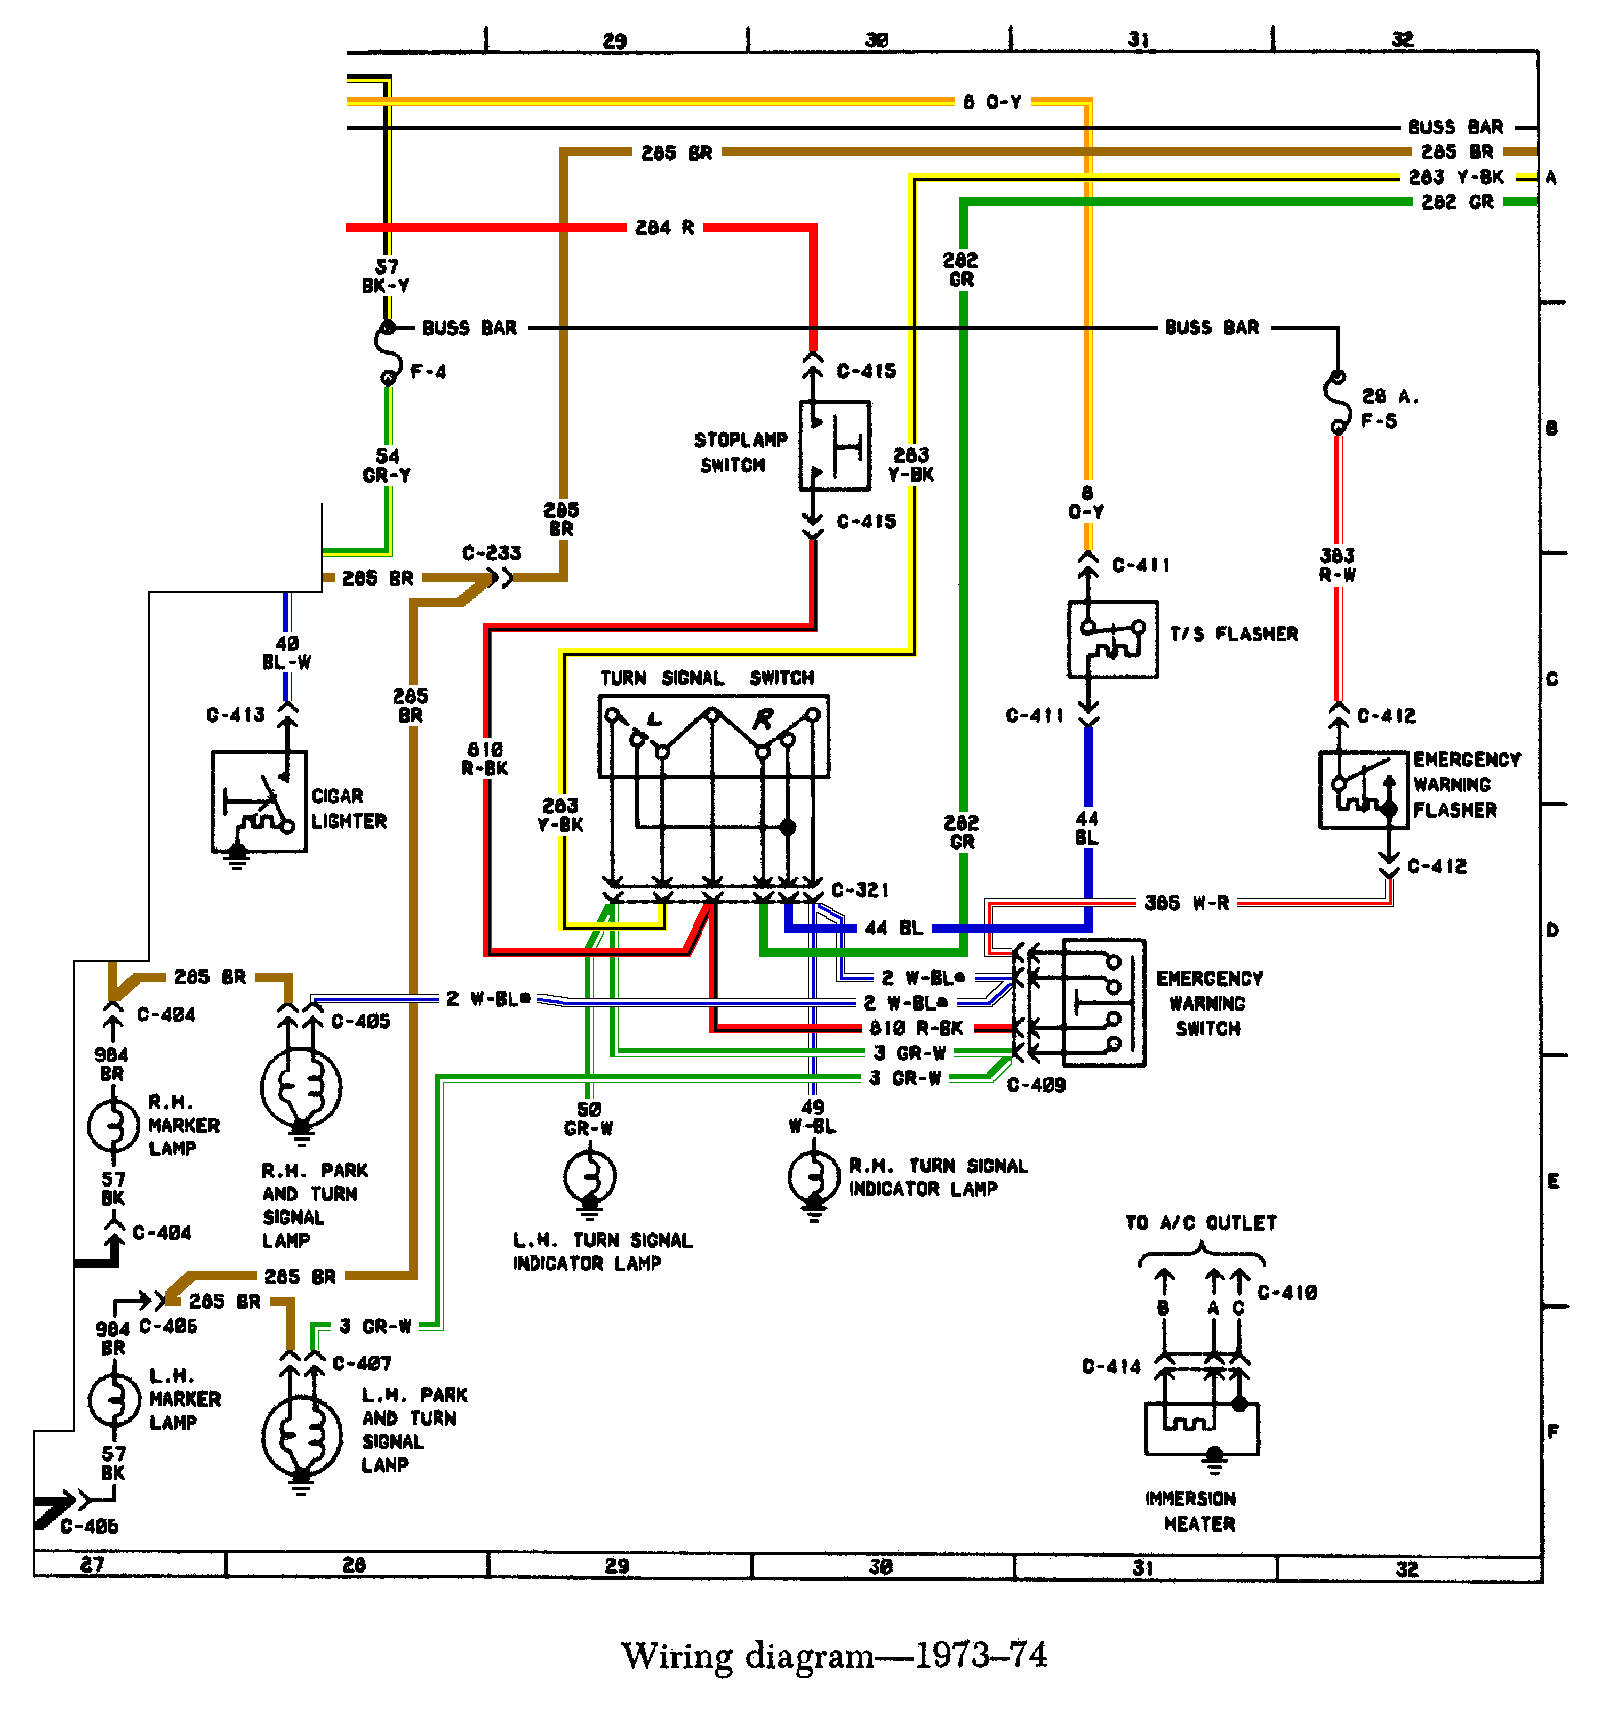 1969 ford bronco wiring diagram lovely 1975 ford bronco wiring diagram